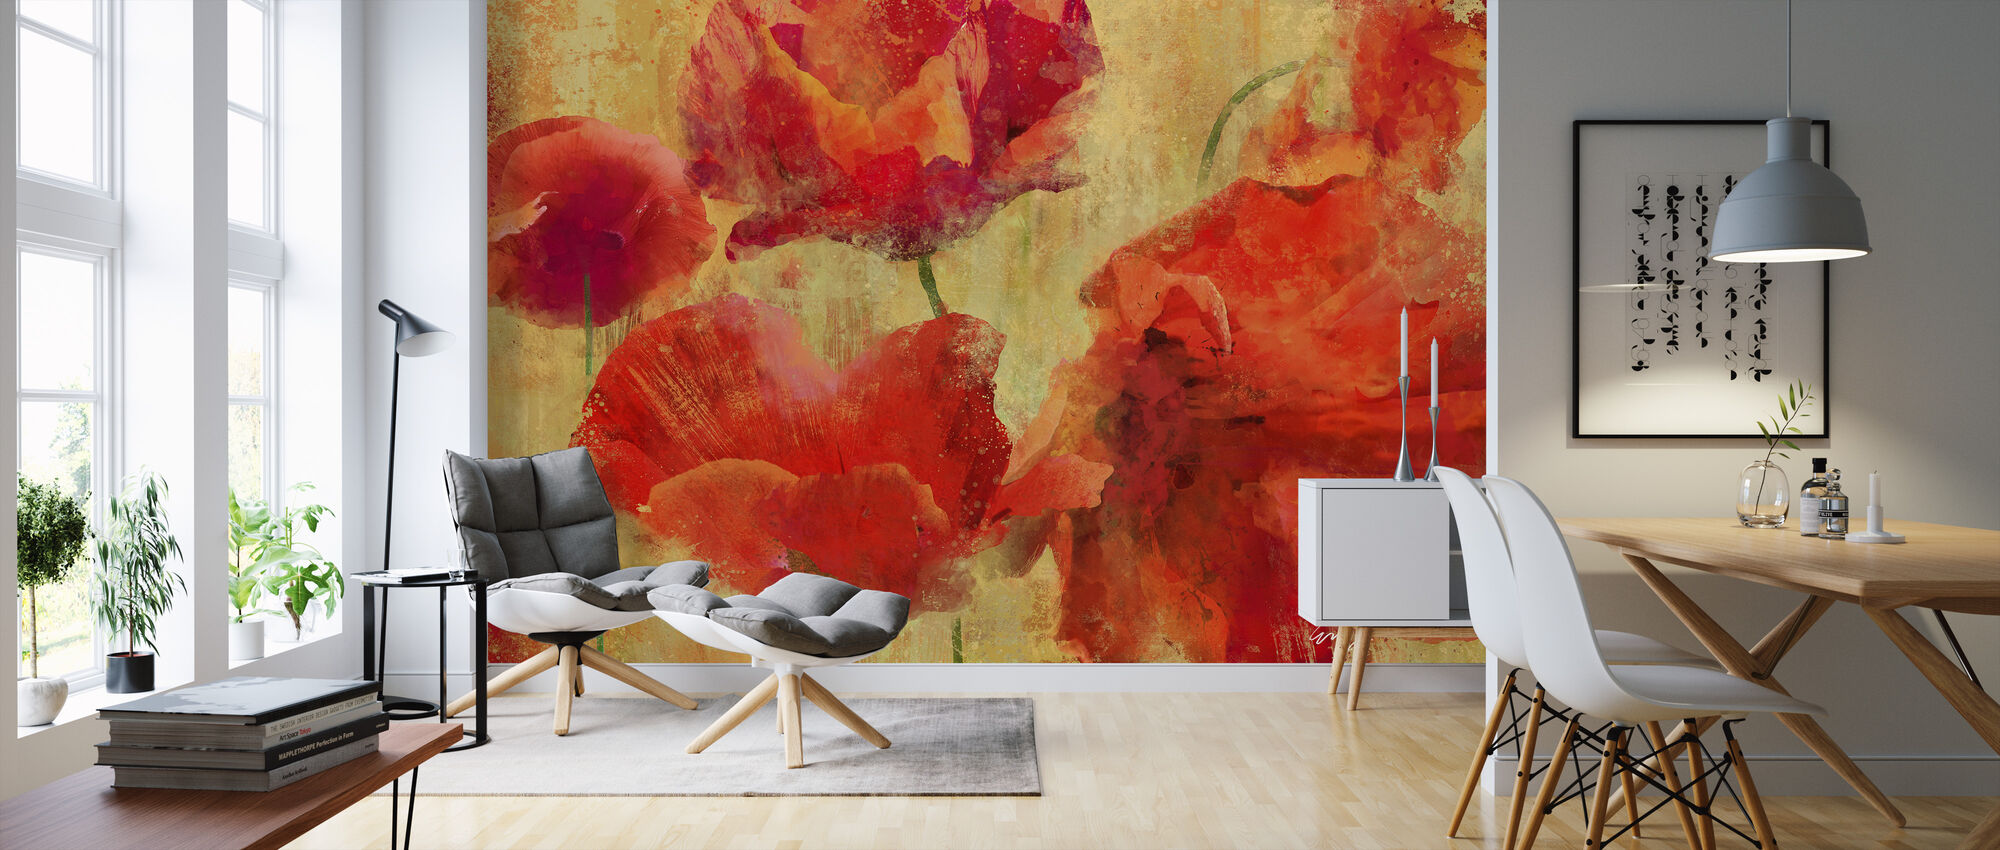 Expressive Flowers - Wallpaper - Living Room